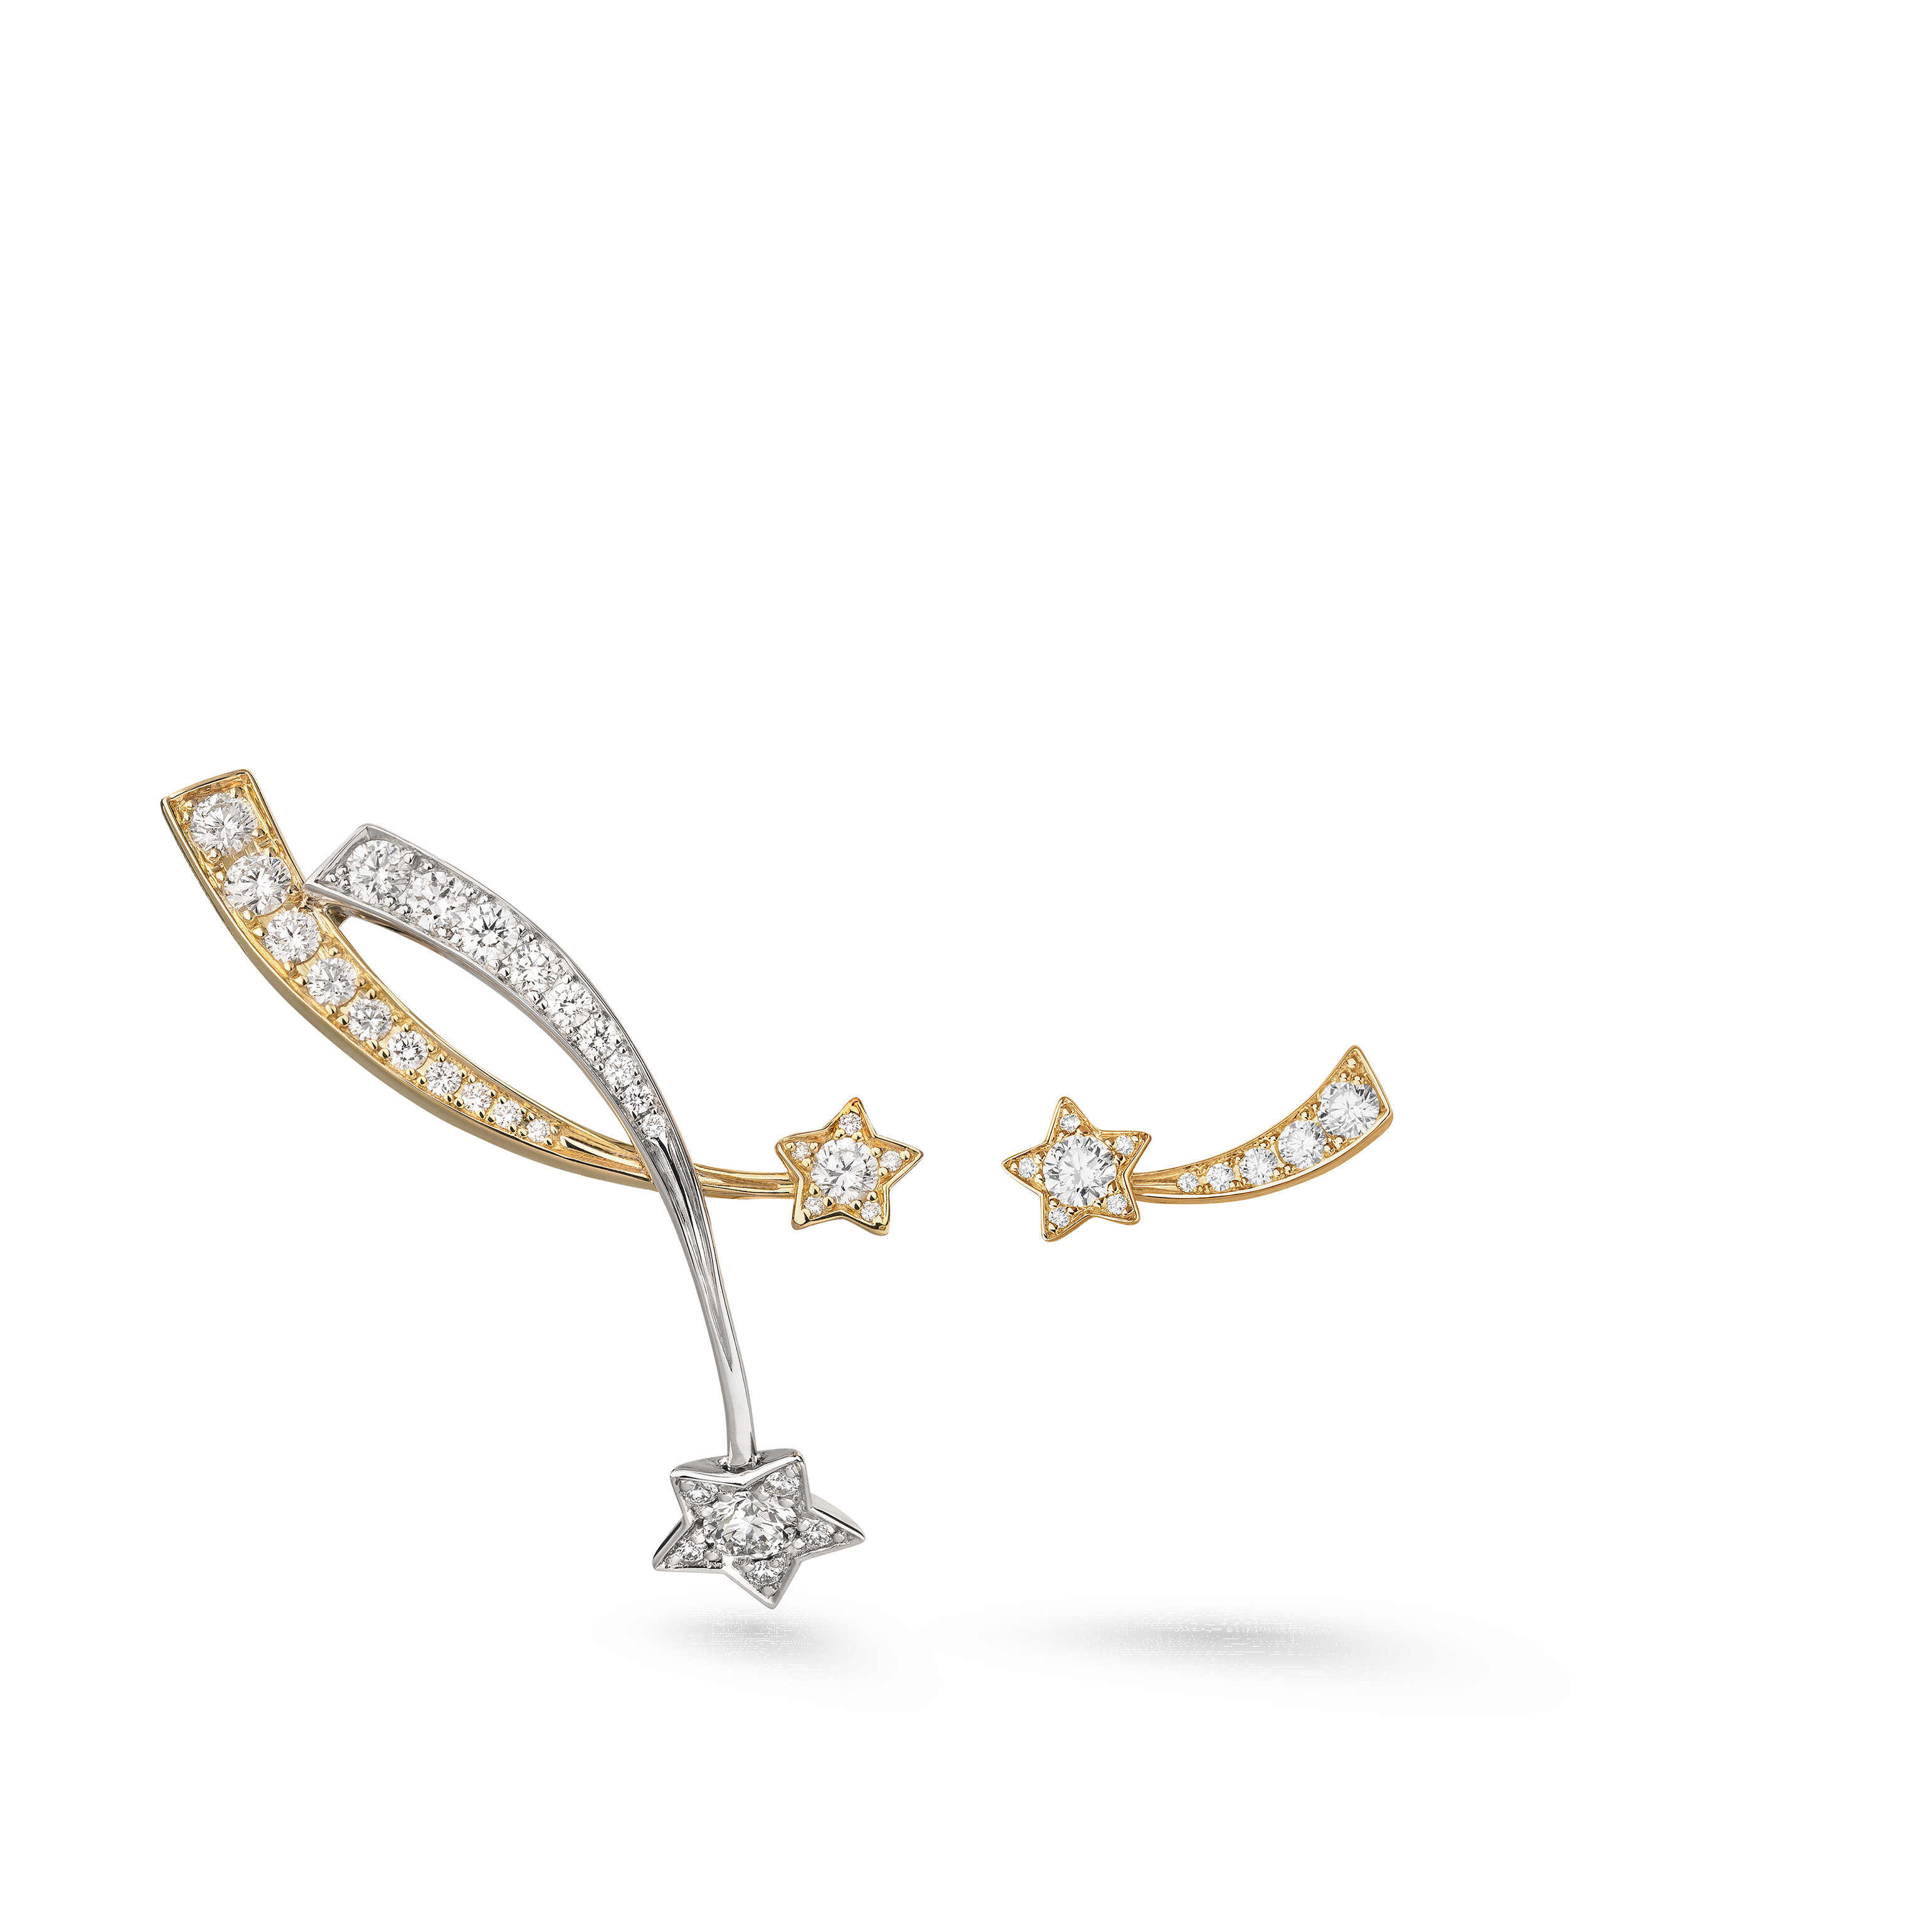 Étoile Filante earrings - 18K white and yellow gold, diamonds - CHANEL - Default view - see standard sized version